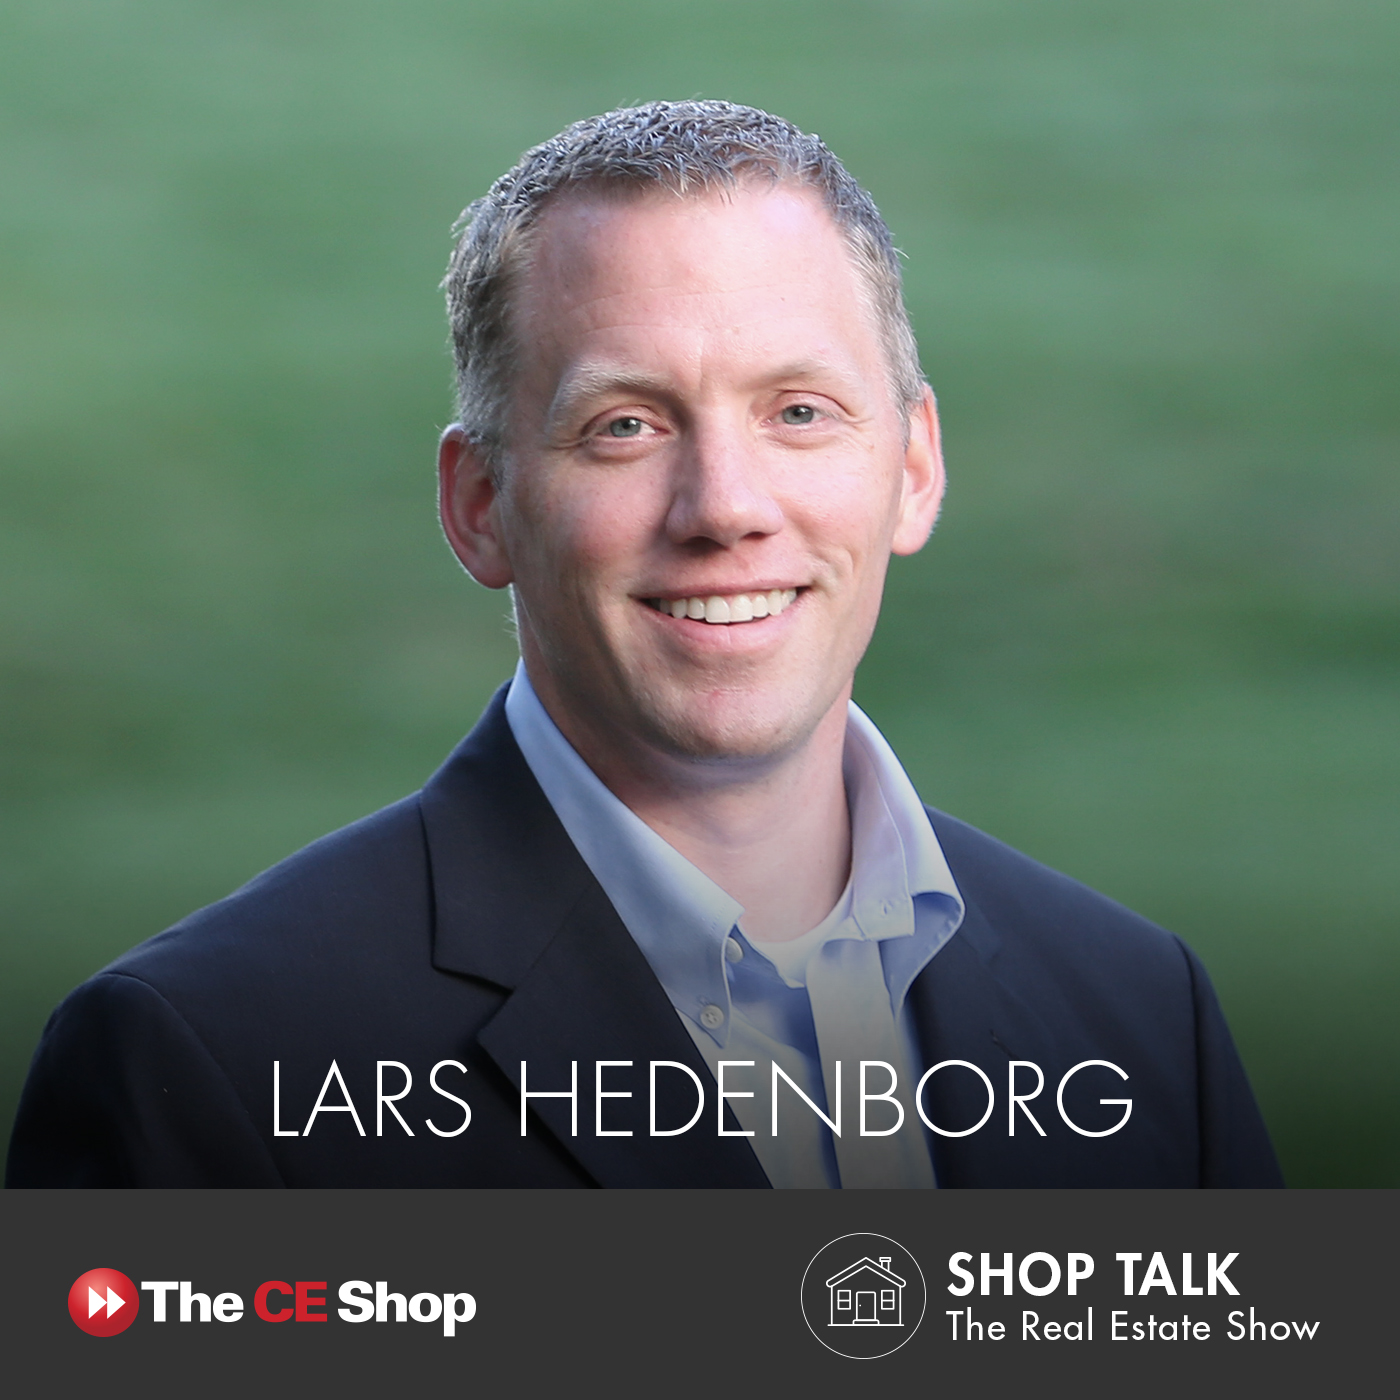 Lars Hedenborg is the founder of Real Estate B School, where he coaches agents how to scale their business.